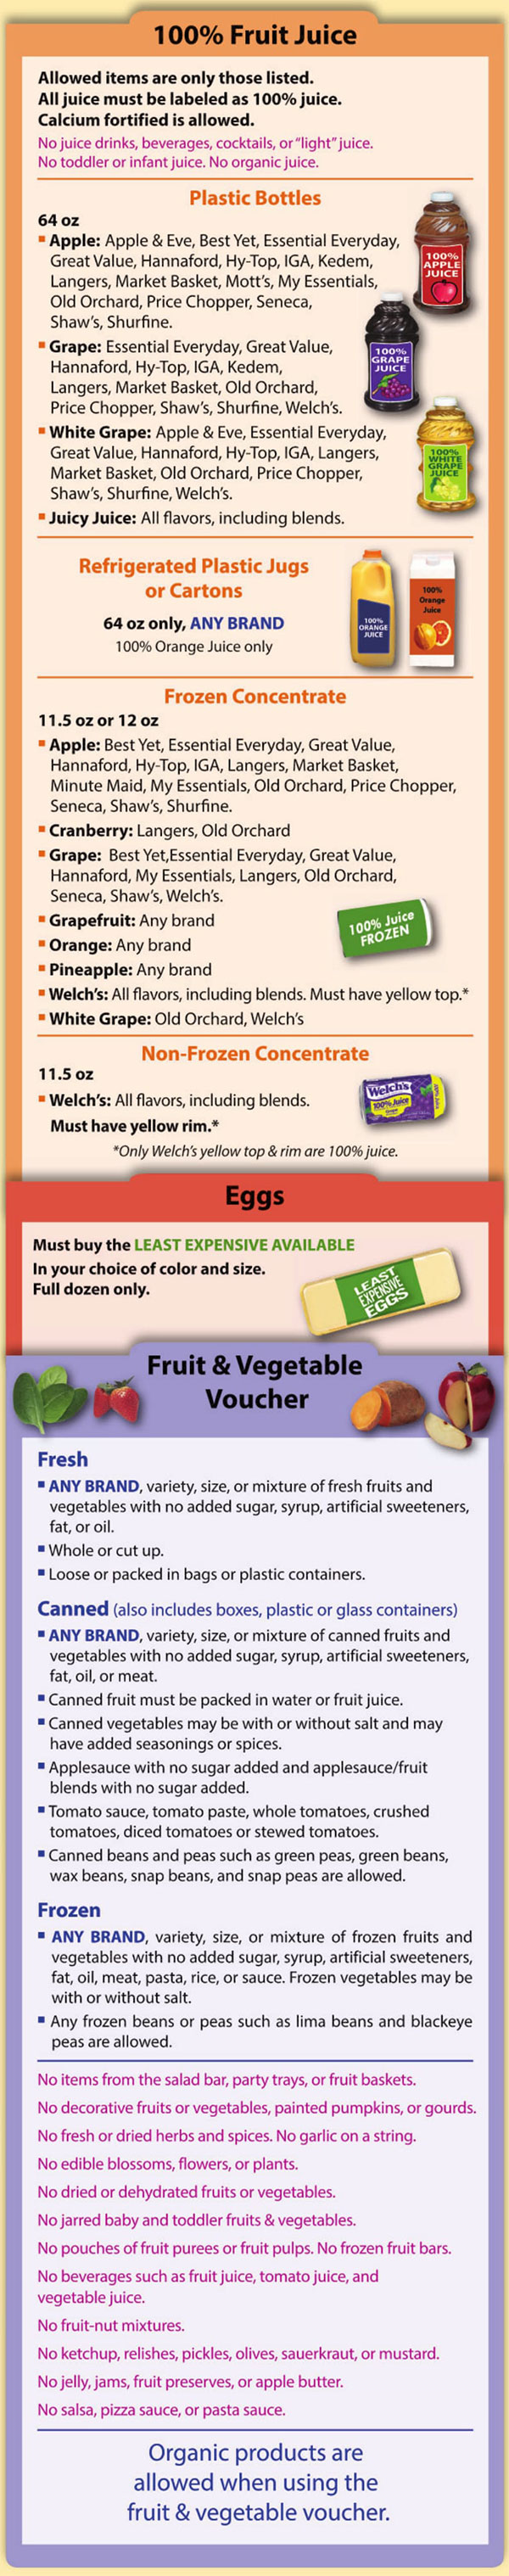 New Hampshire WIC Food List Fruit Juice, Eggs, Fruits and Vegetables